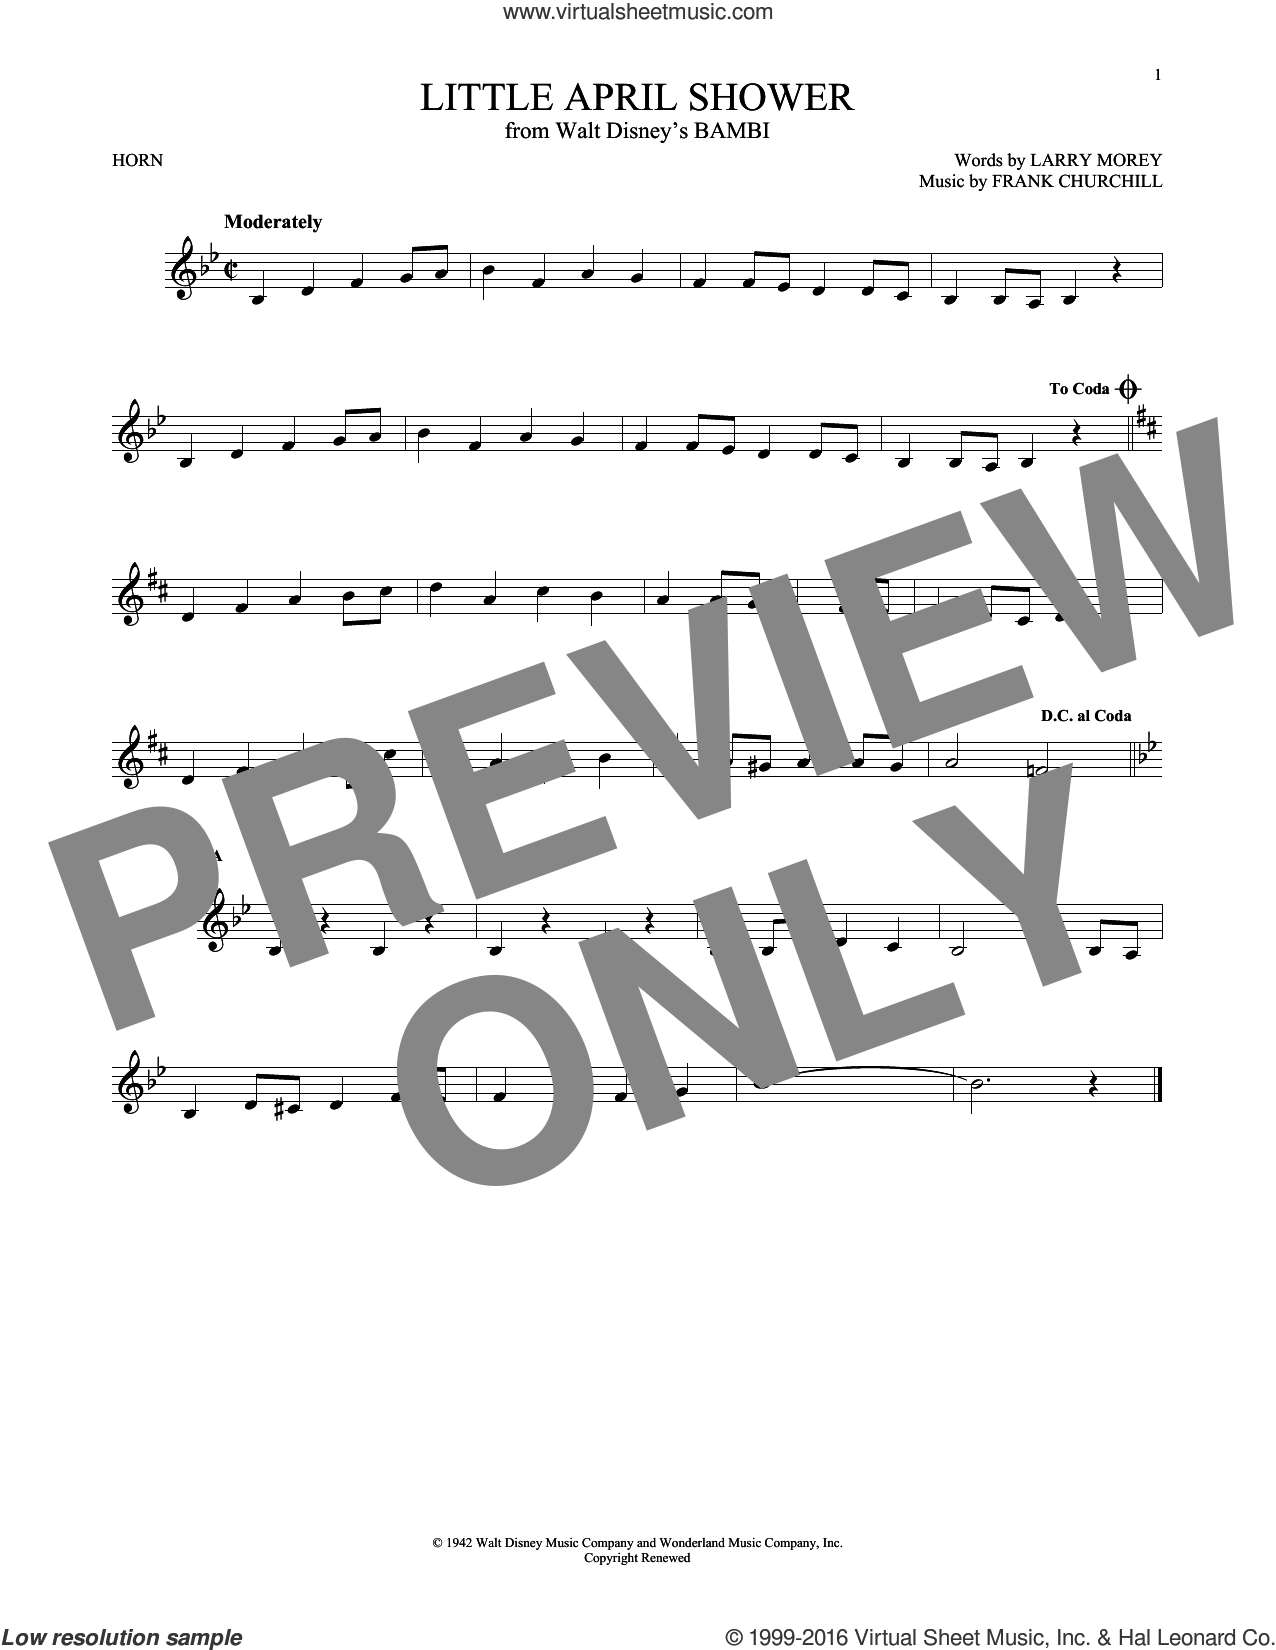 Little April Shower sheet music for horn solo by Larry Morey and Frank Churchill, intermediate skill level